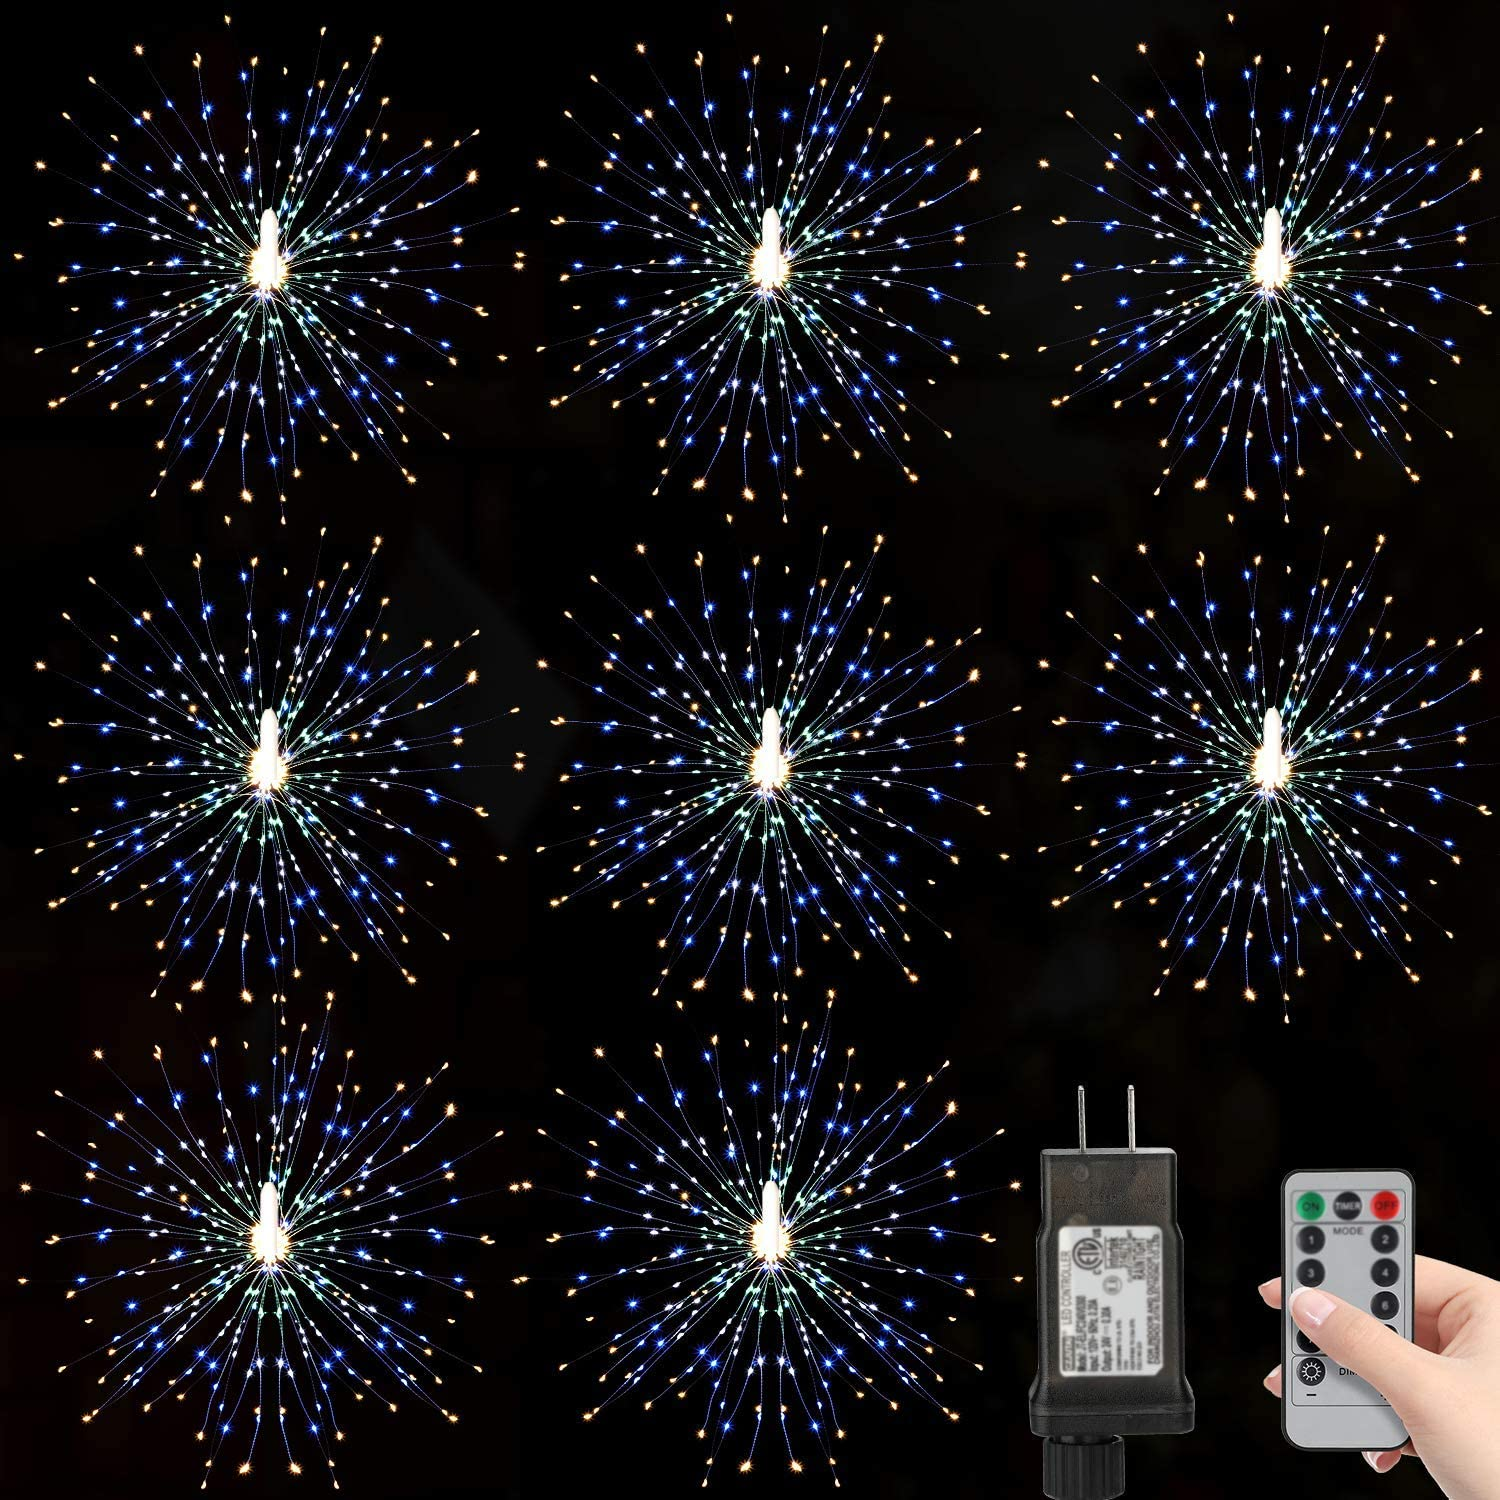 Arbnic 8 Pack 180 Led Firework Lights Starburst Light with Remote, Copper Wire Lights 8 Modes Waterproof Decorative Lights for Terrace, Garden, Party, Outdoor, Christmas